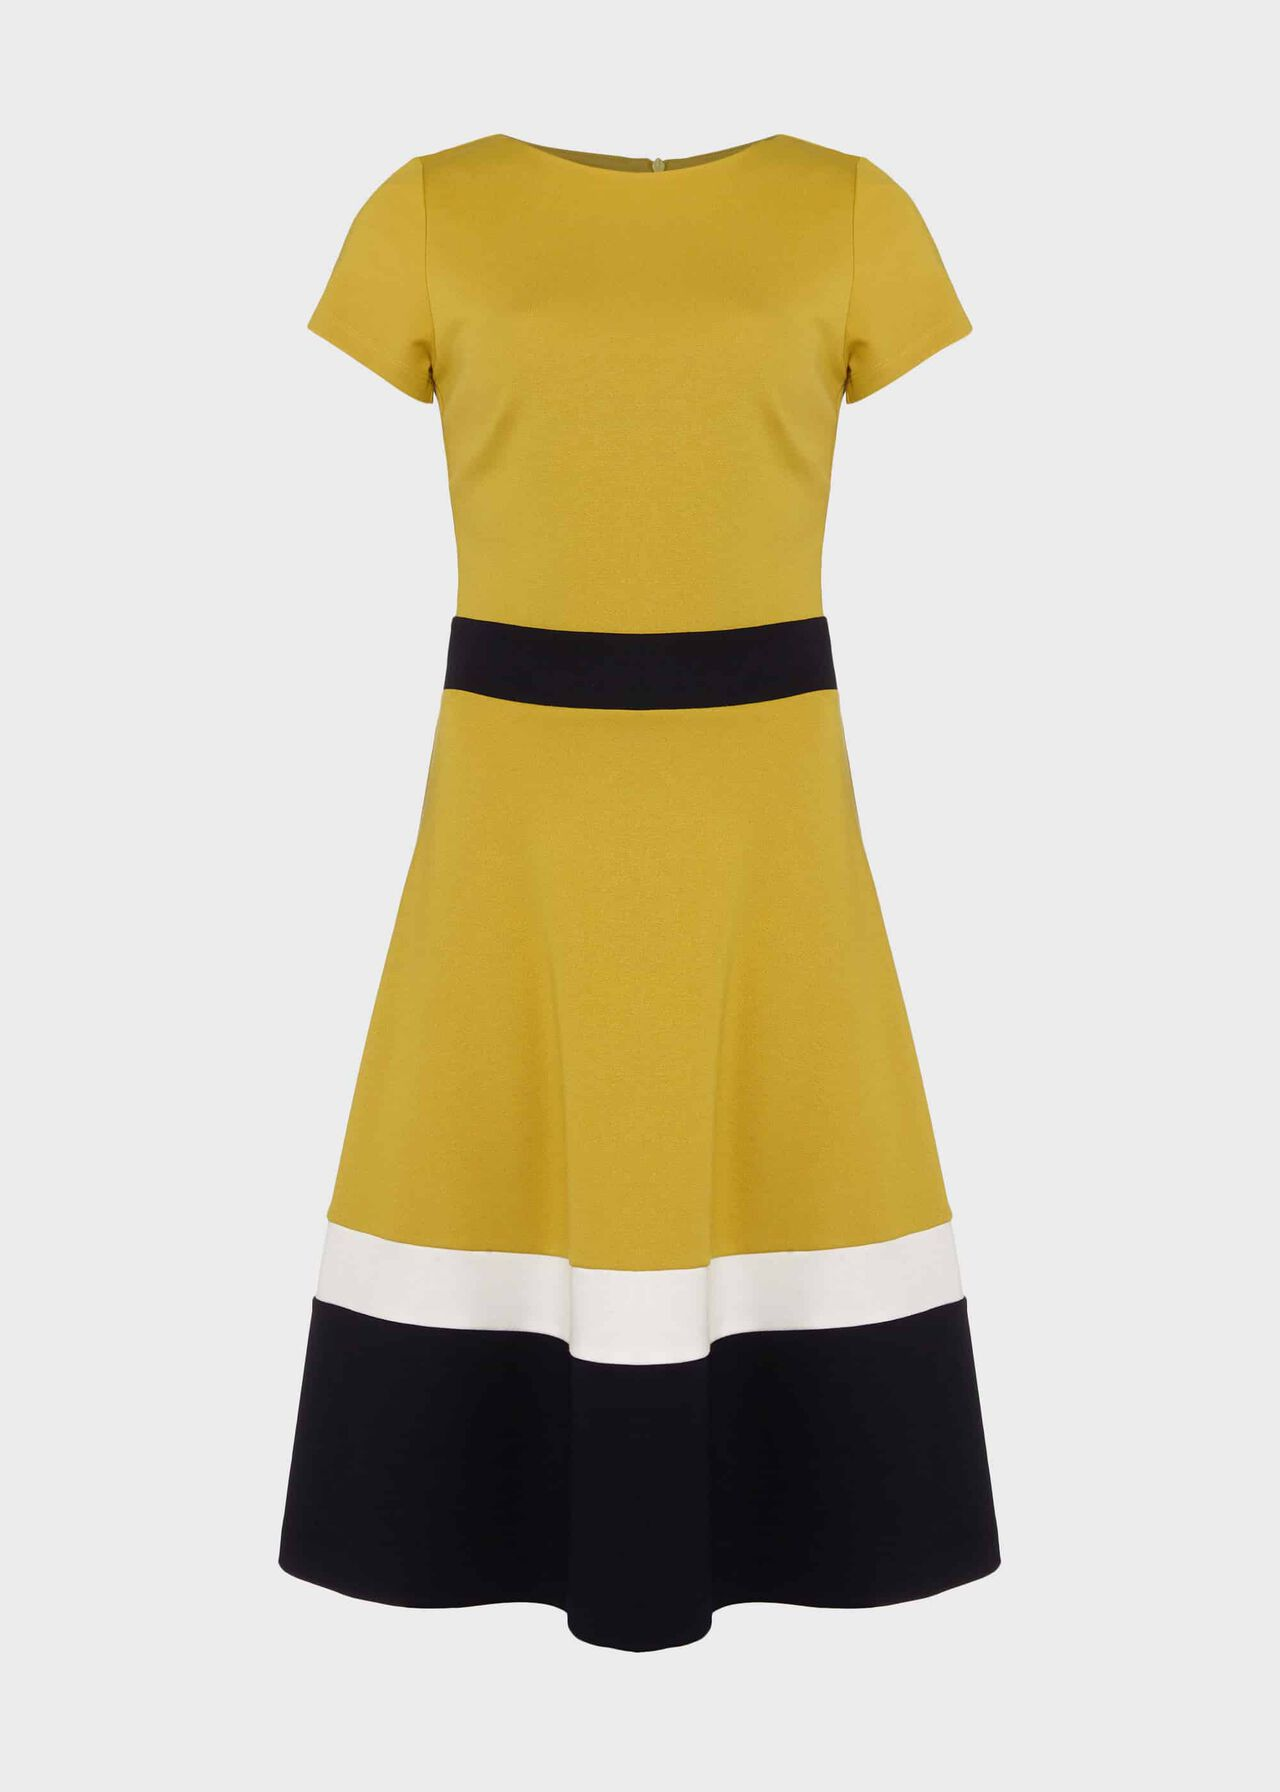 Seasalter Jersey Fit And Flare Dress Yellow Nvy Whte